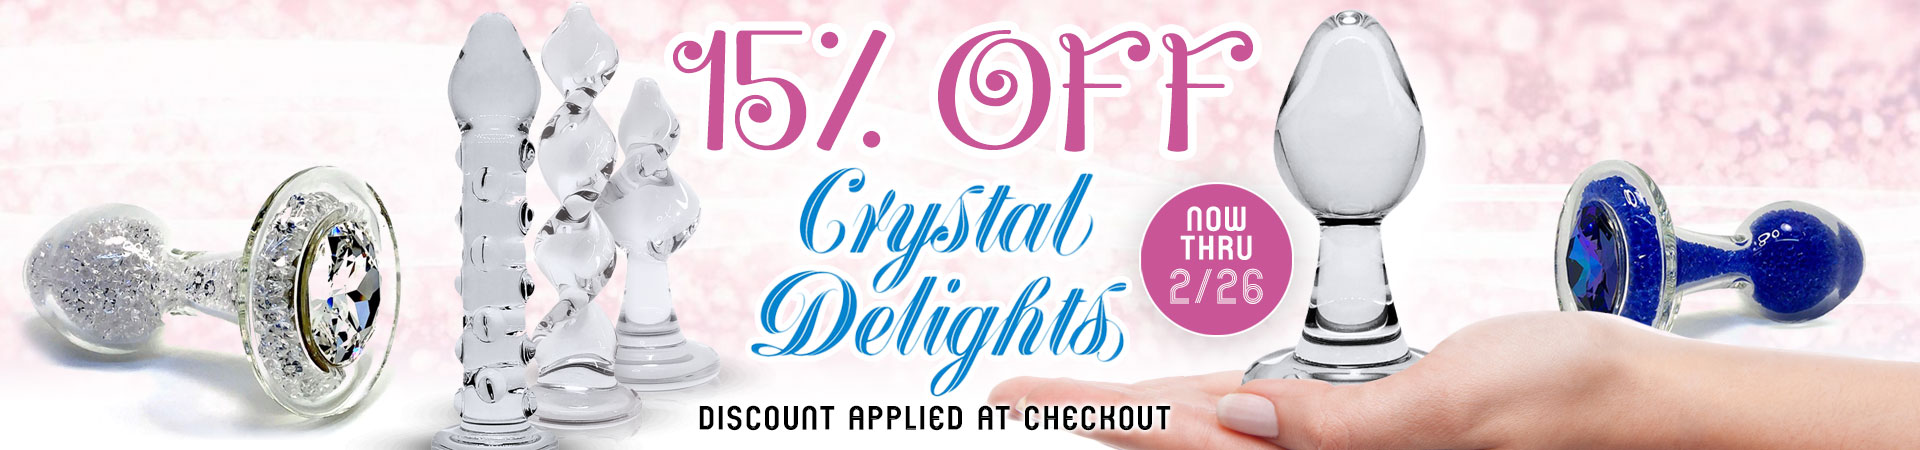 15% OFF Crystal Delights - End 2/26